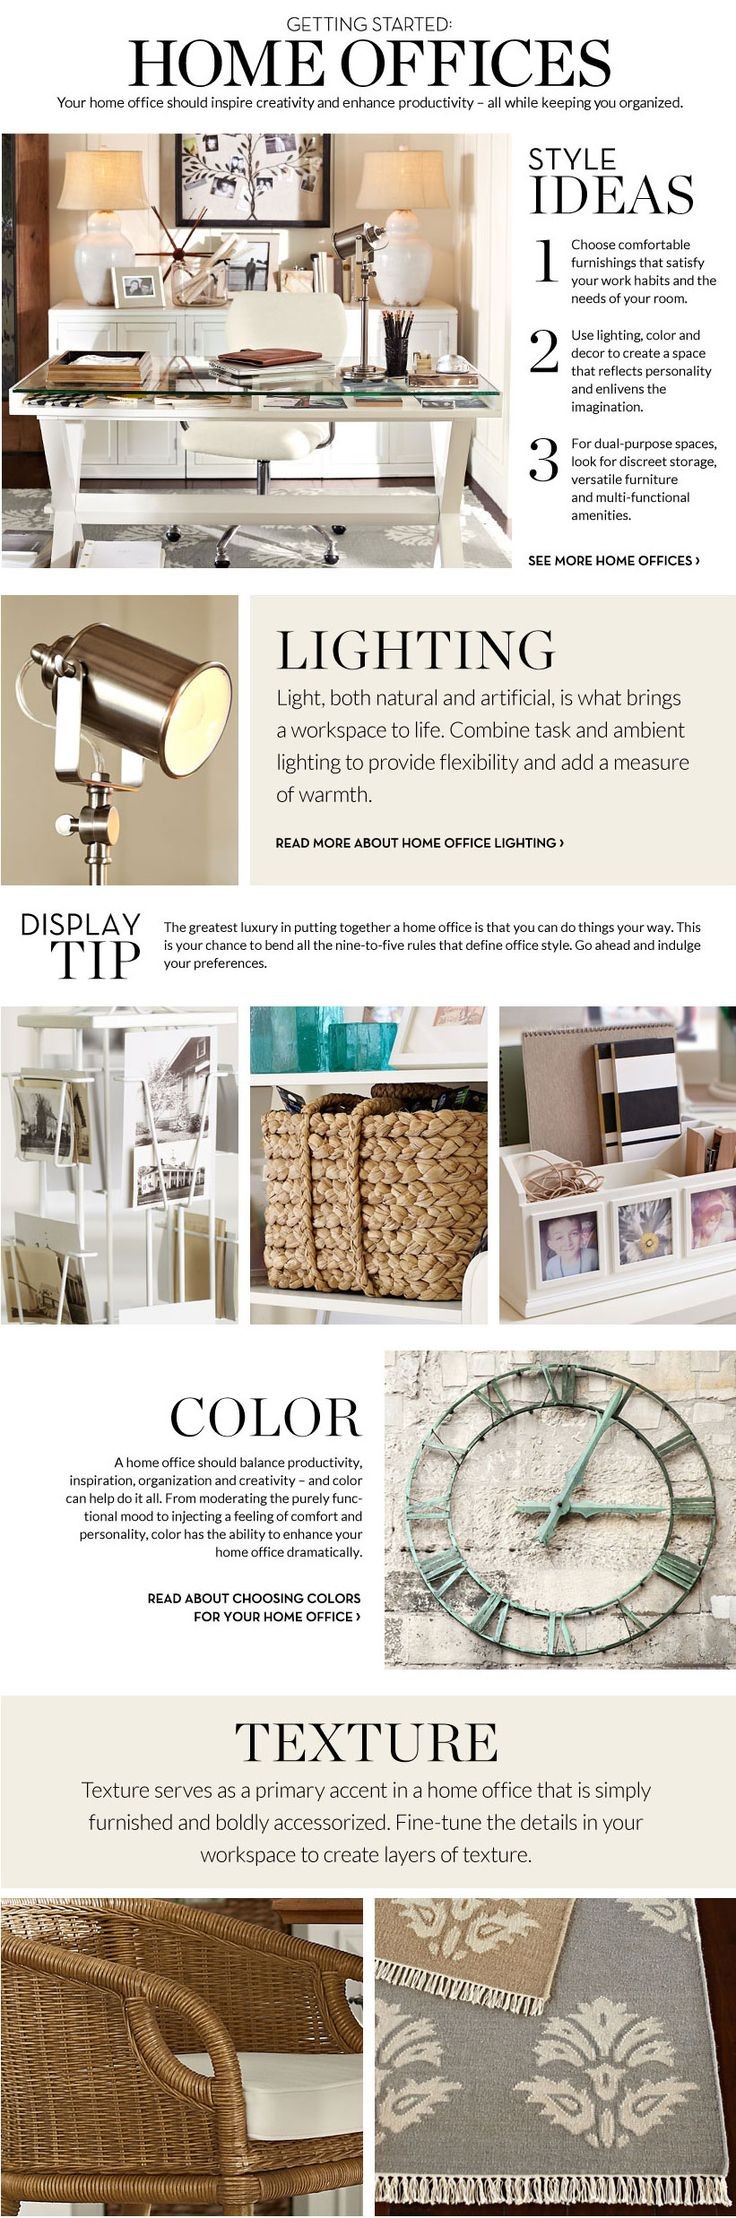 Home Office Decorating Ideas & Decorating Home Office | Pottery Barn